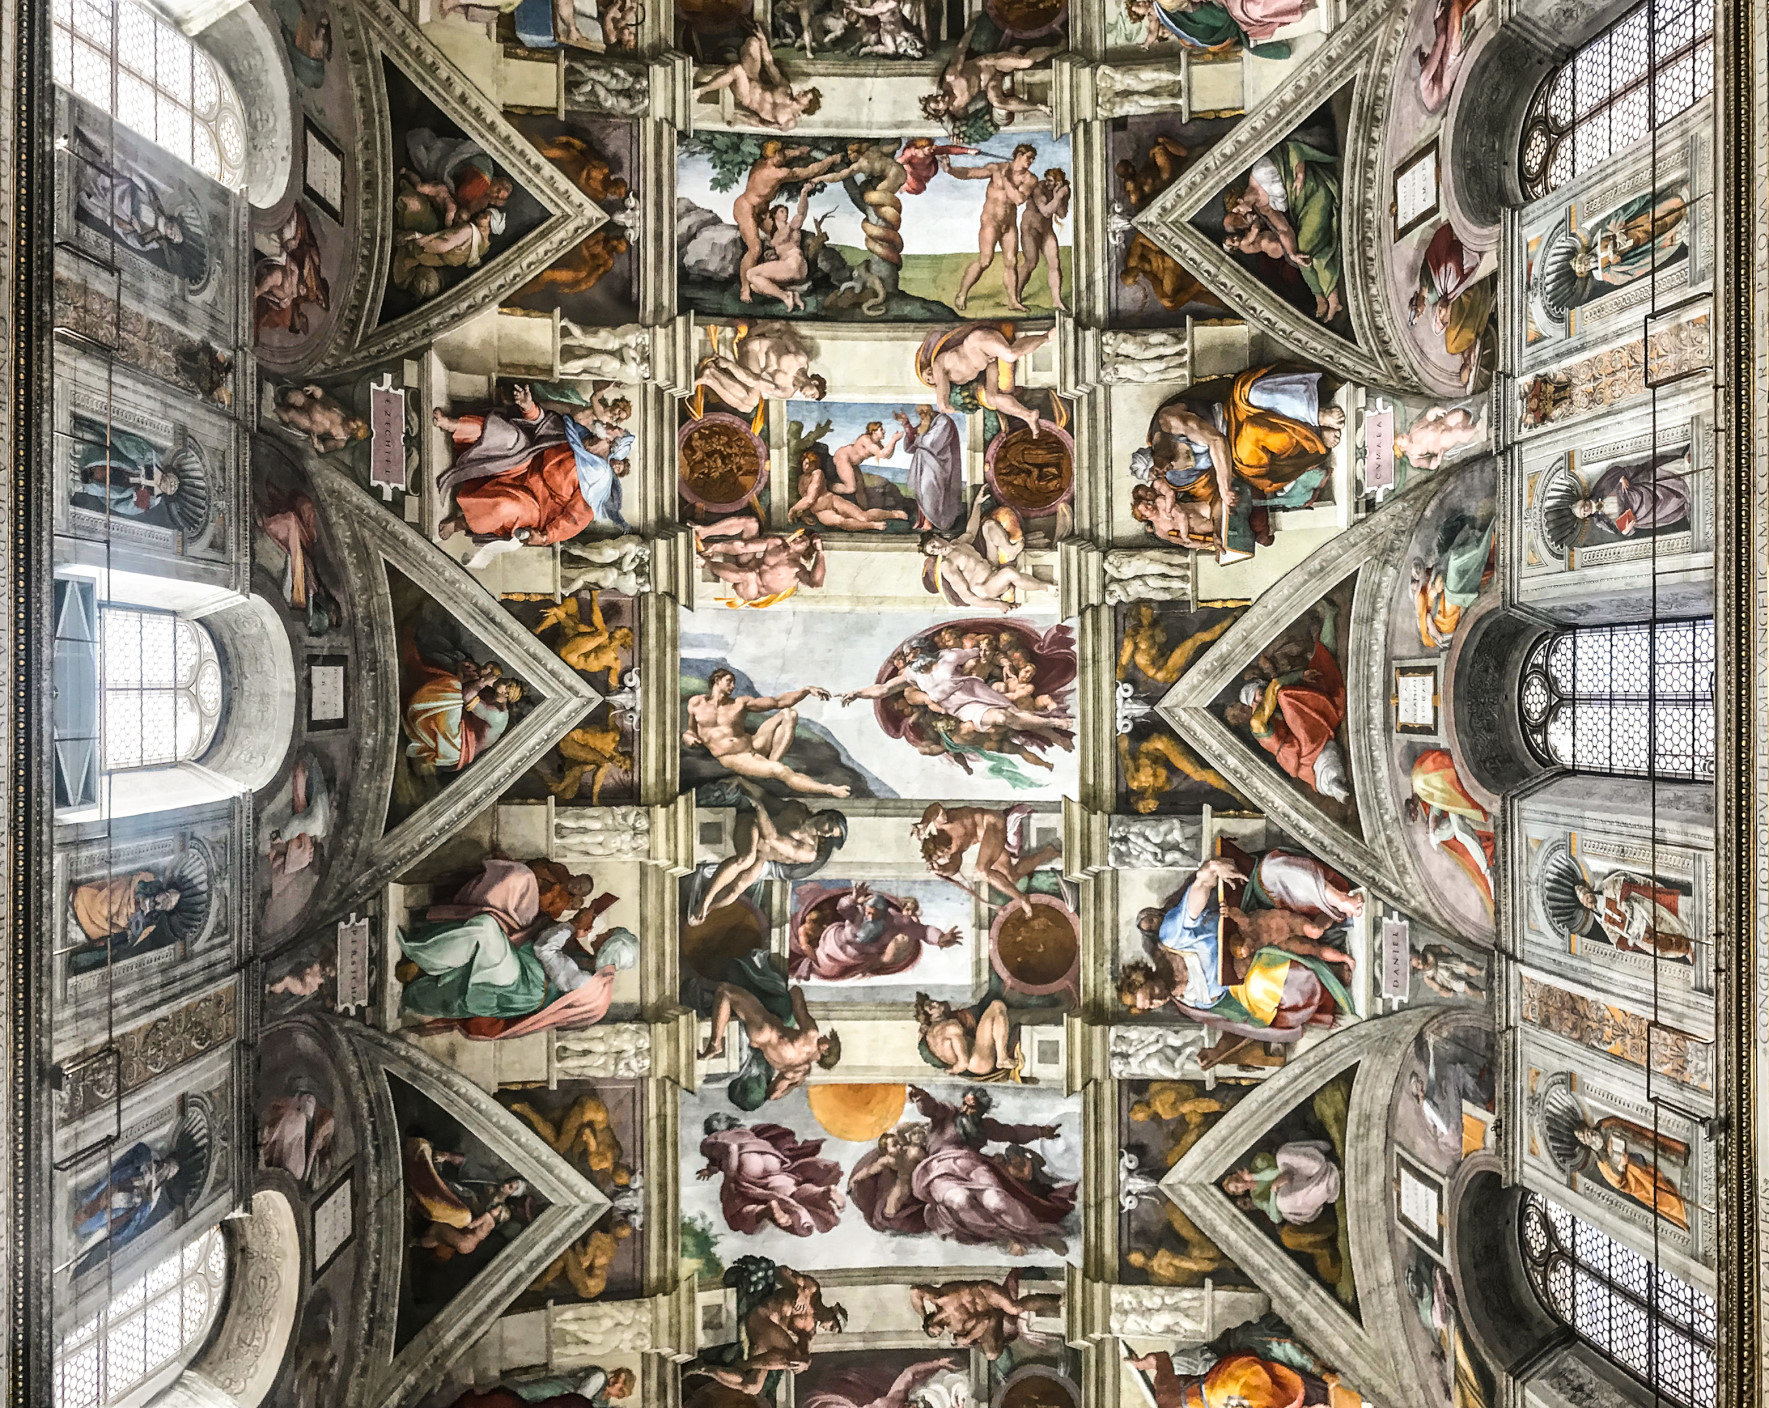 Ceiling of the Sistine chapel in the Vatican Museum